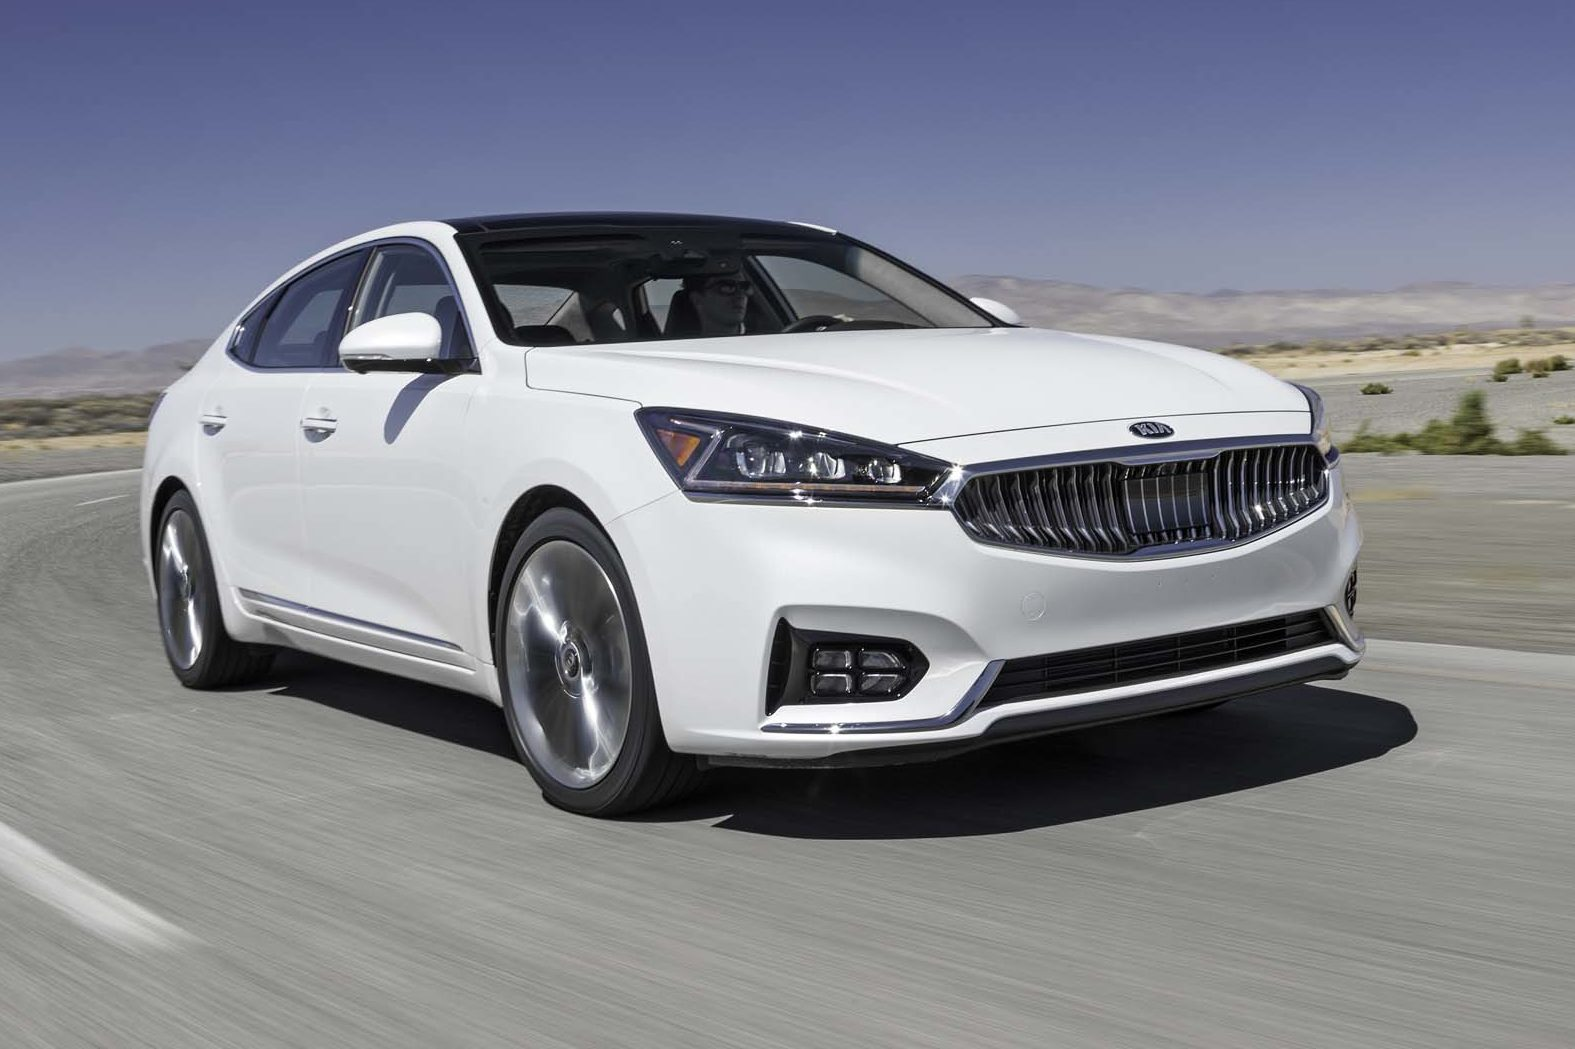 2017 Kia Cadenza SXL Front Three Quarter In Motion E1477931188112